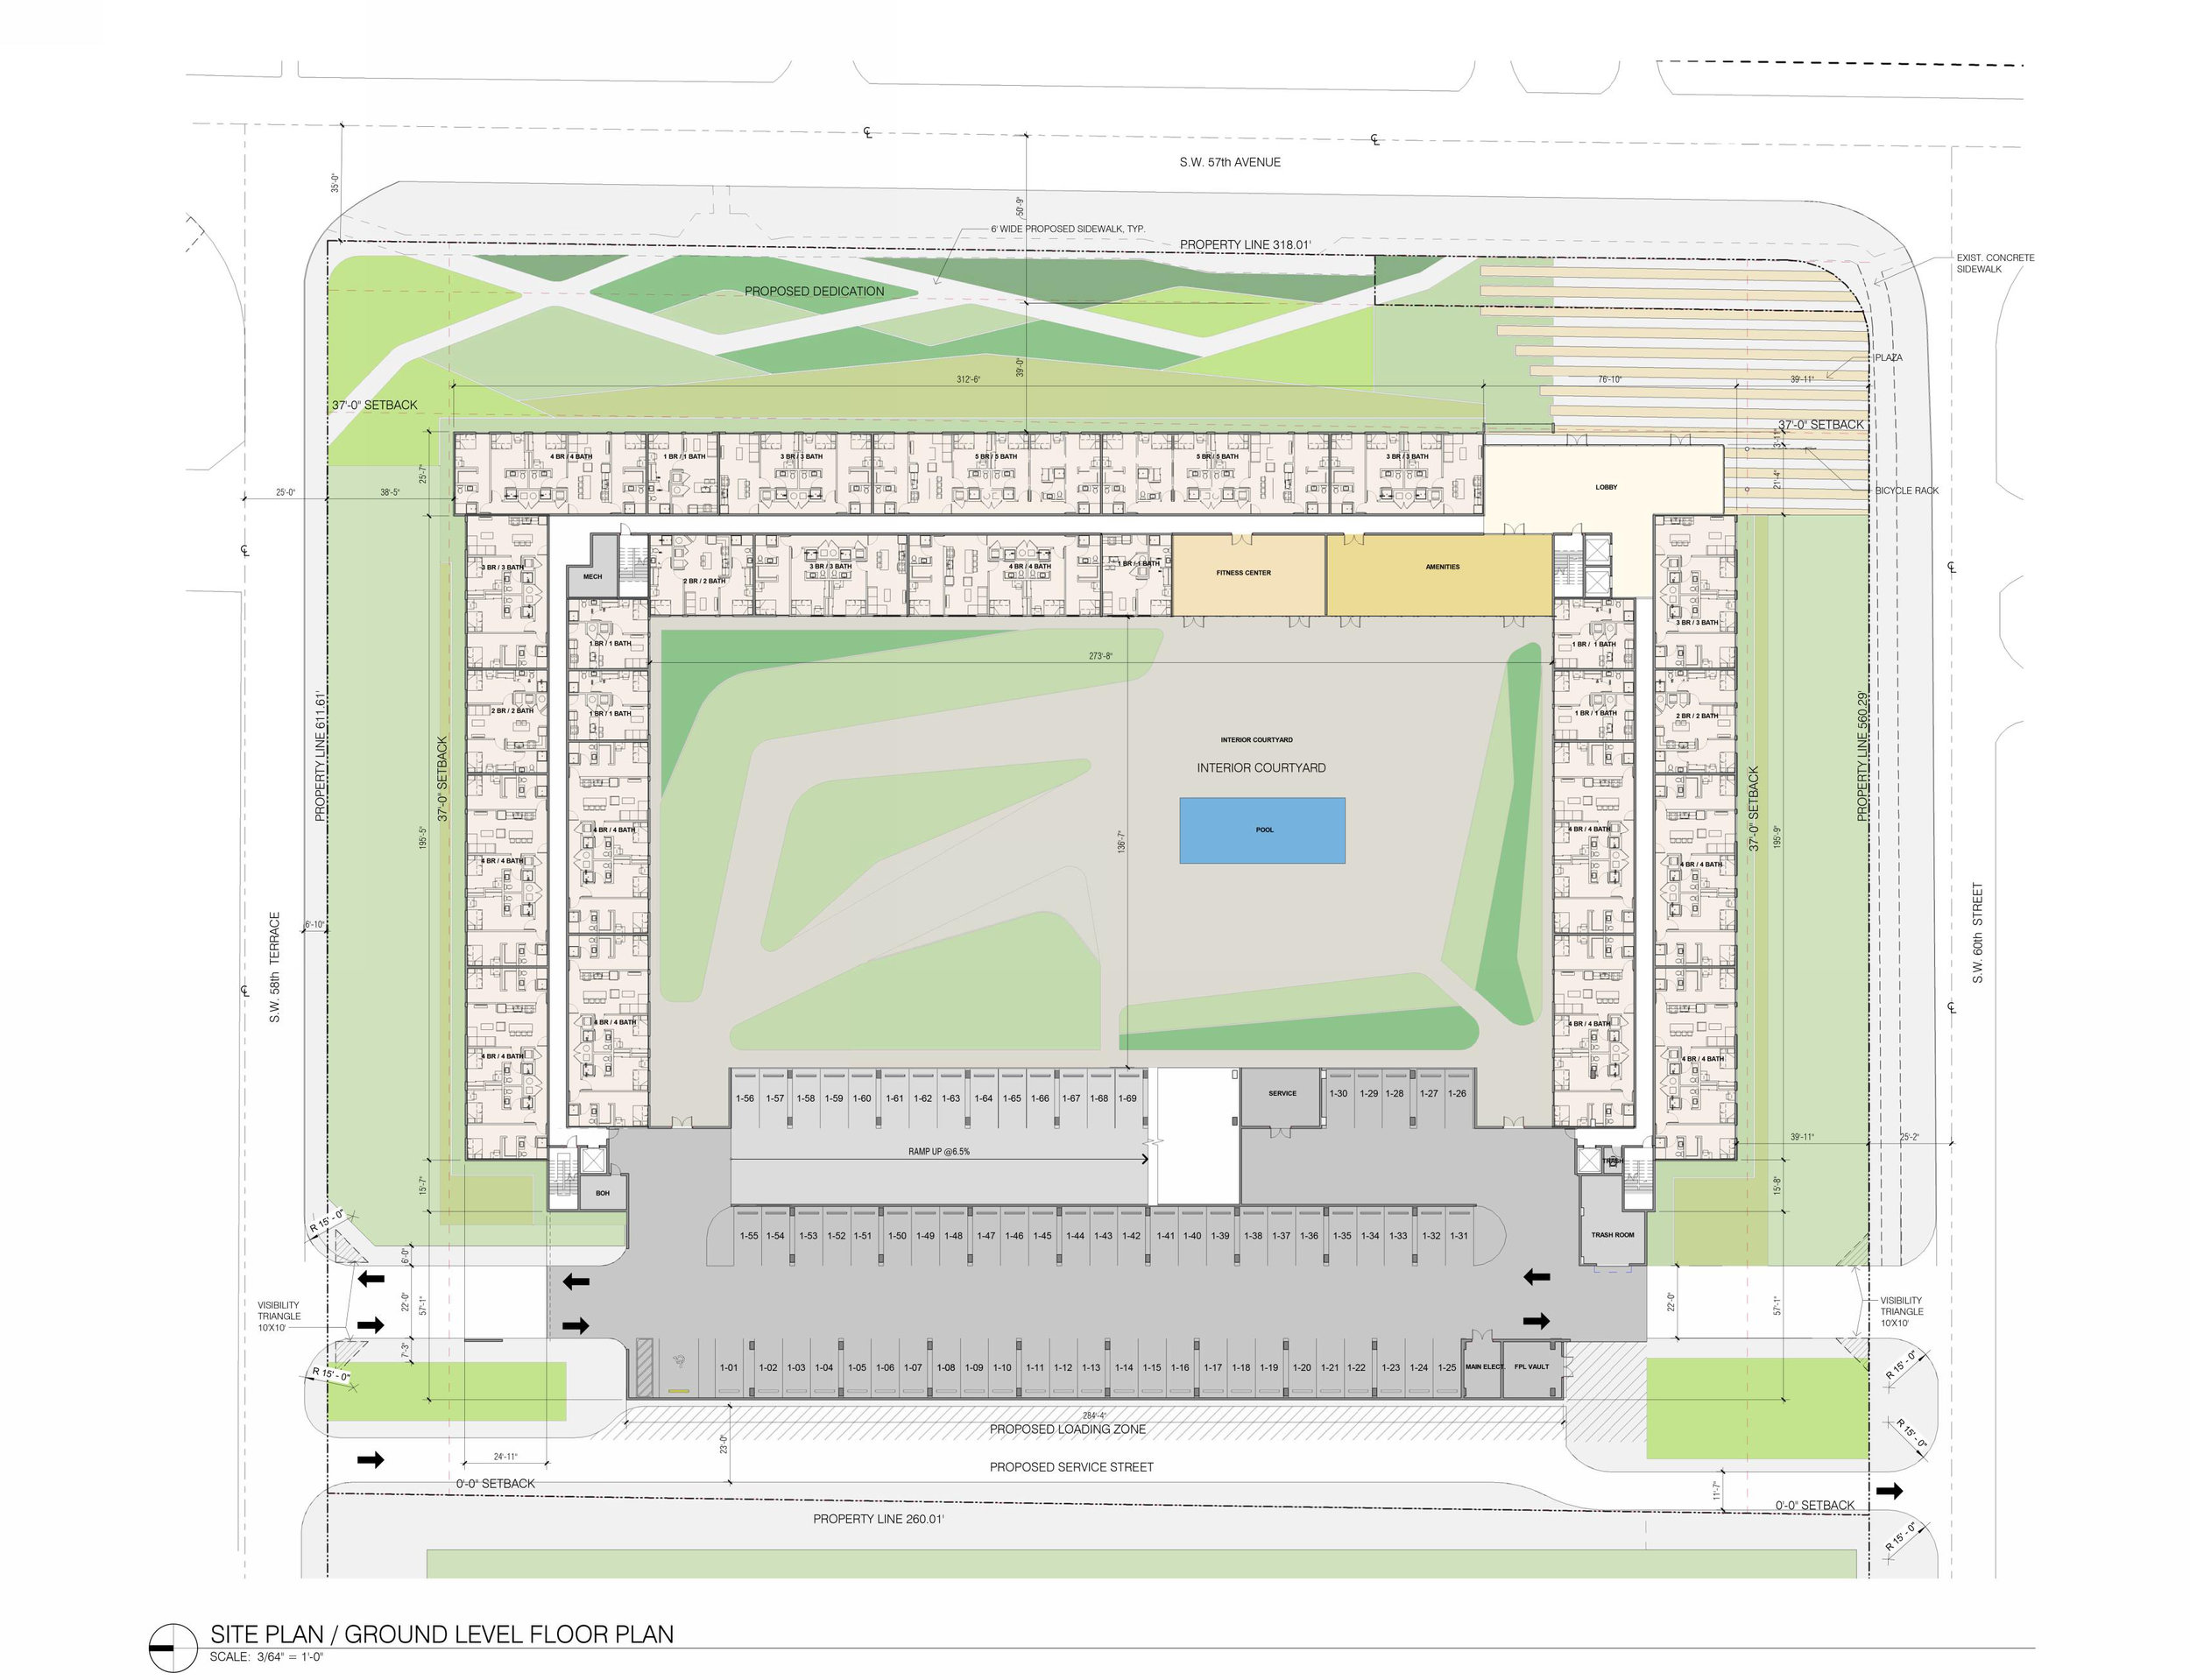 Site Plan - The original plan complies with county zoning code on lot coverage, open space, unit count, height, setbacks, and FAR. Setbacks along the street per zoning code create greenways for the neighborhood. A single internal courtyard is utilized for outdoor amenities. The parking garage is accessed off of 58th and 60th